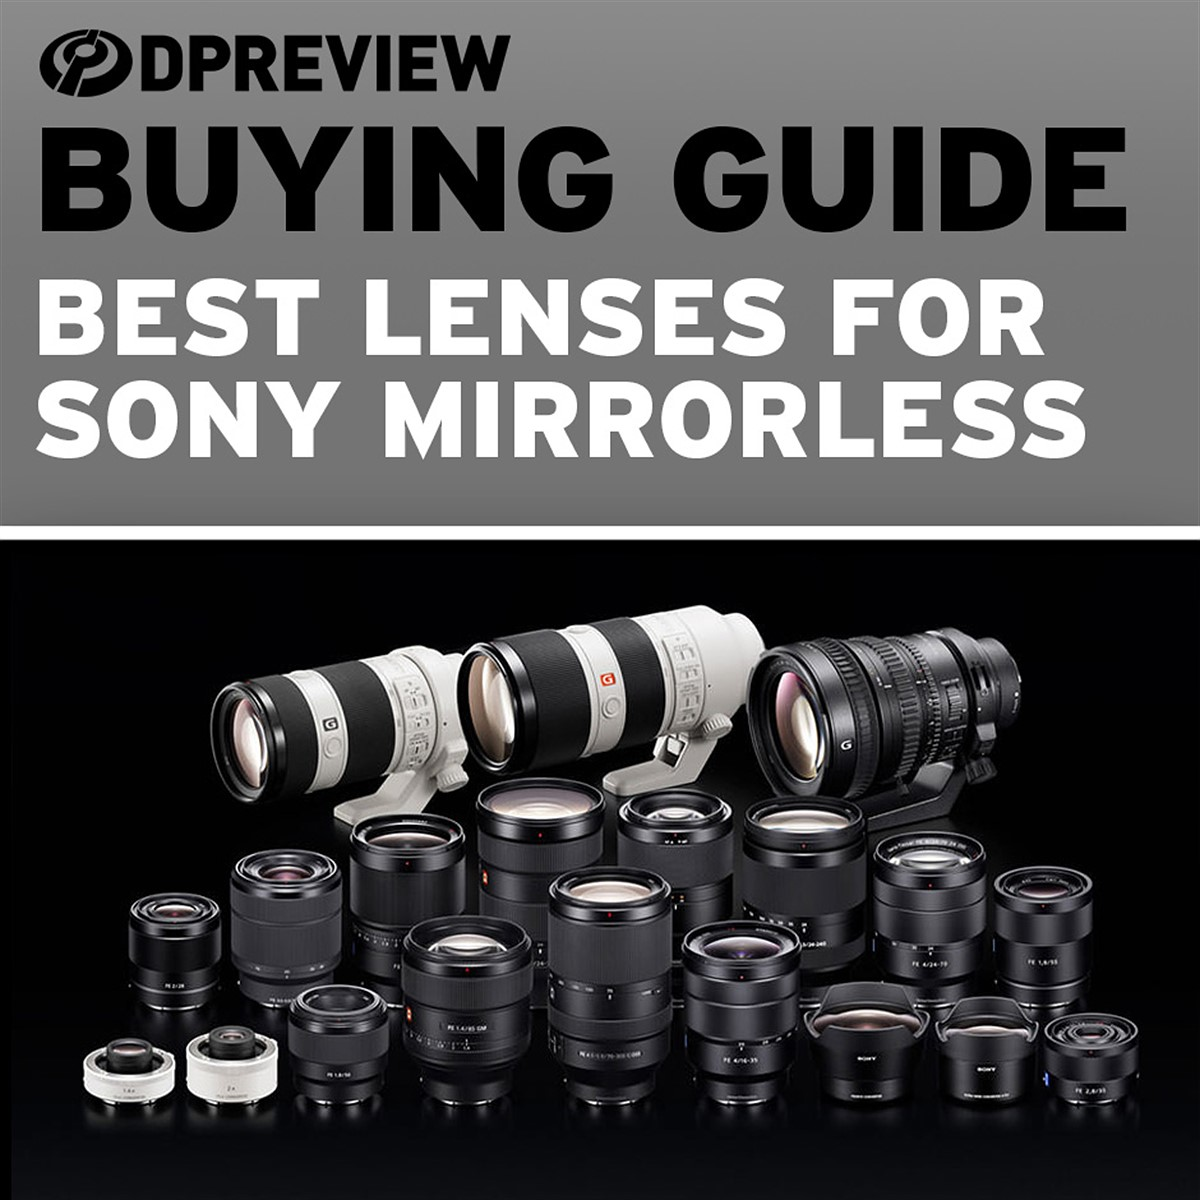 Buying Guide: The best lenses for Sony mirrorless cameras: Digital